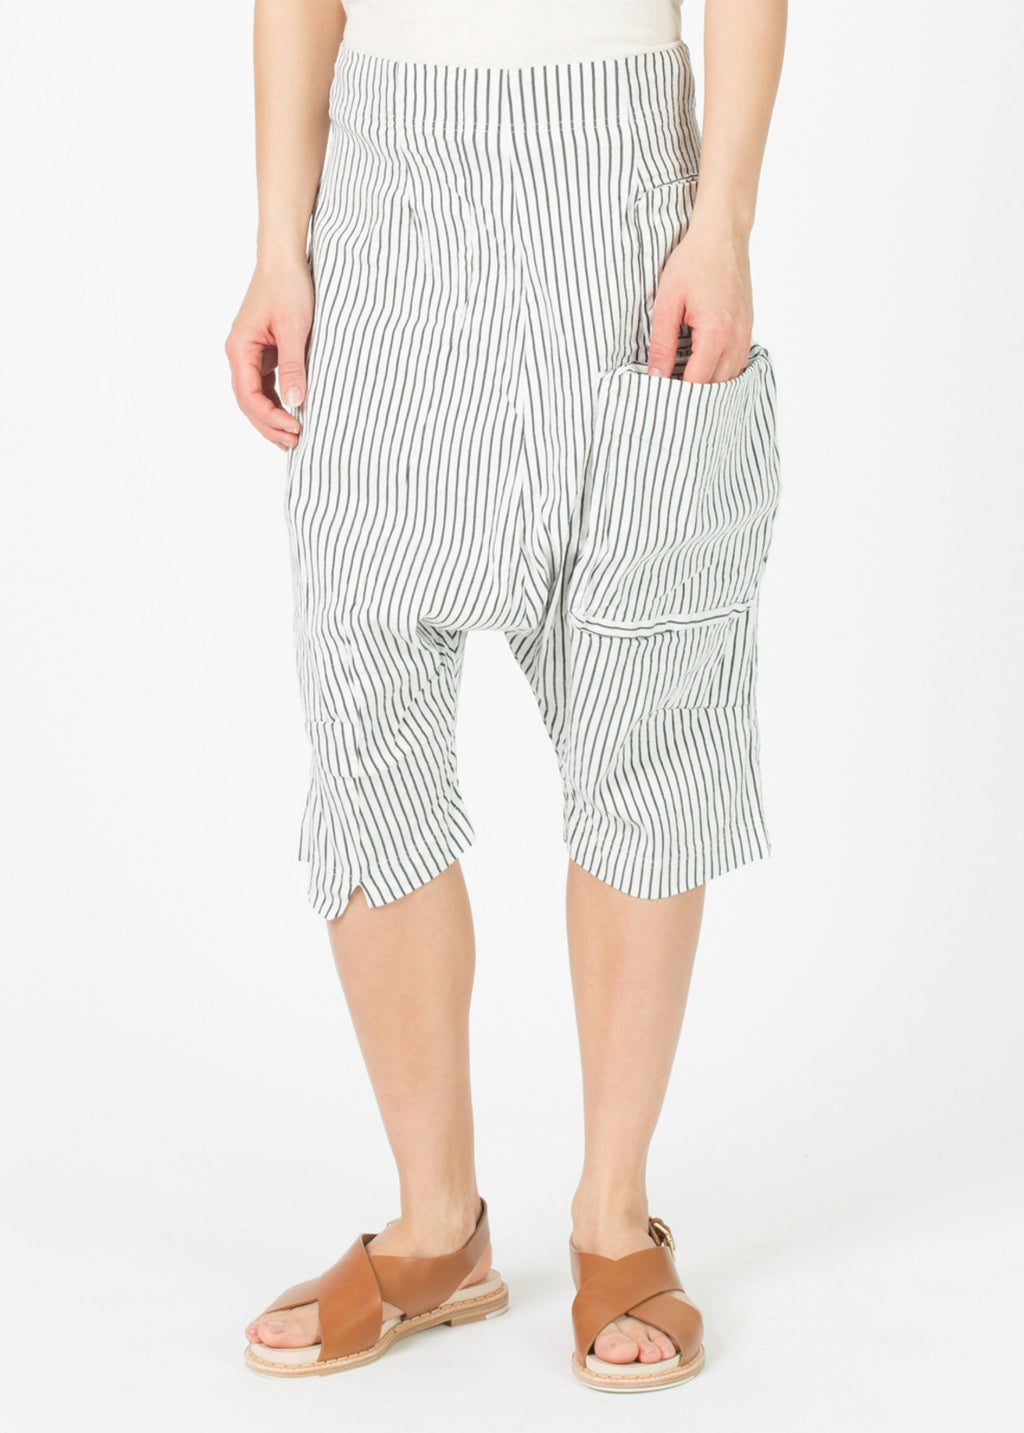 Drop Crotch Four Pocket Short